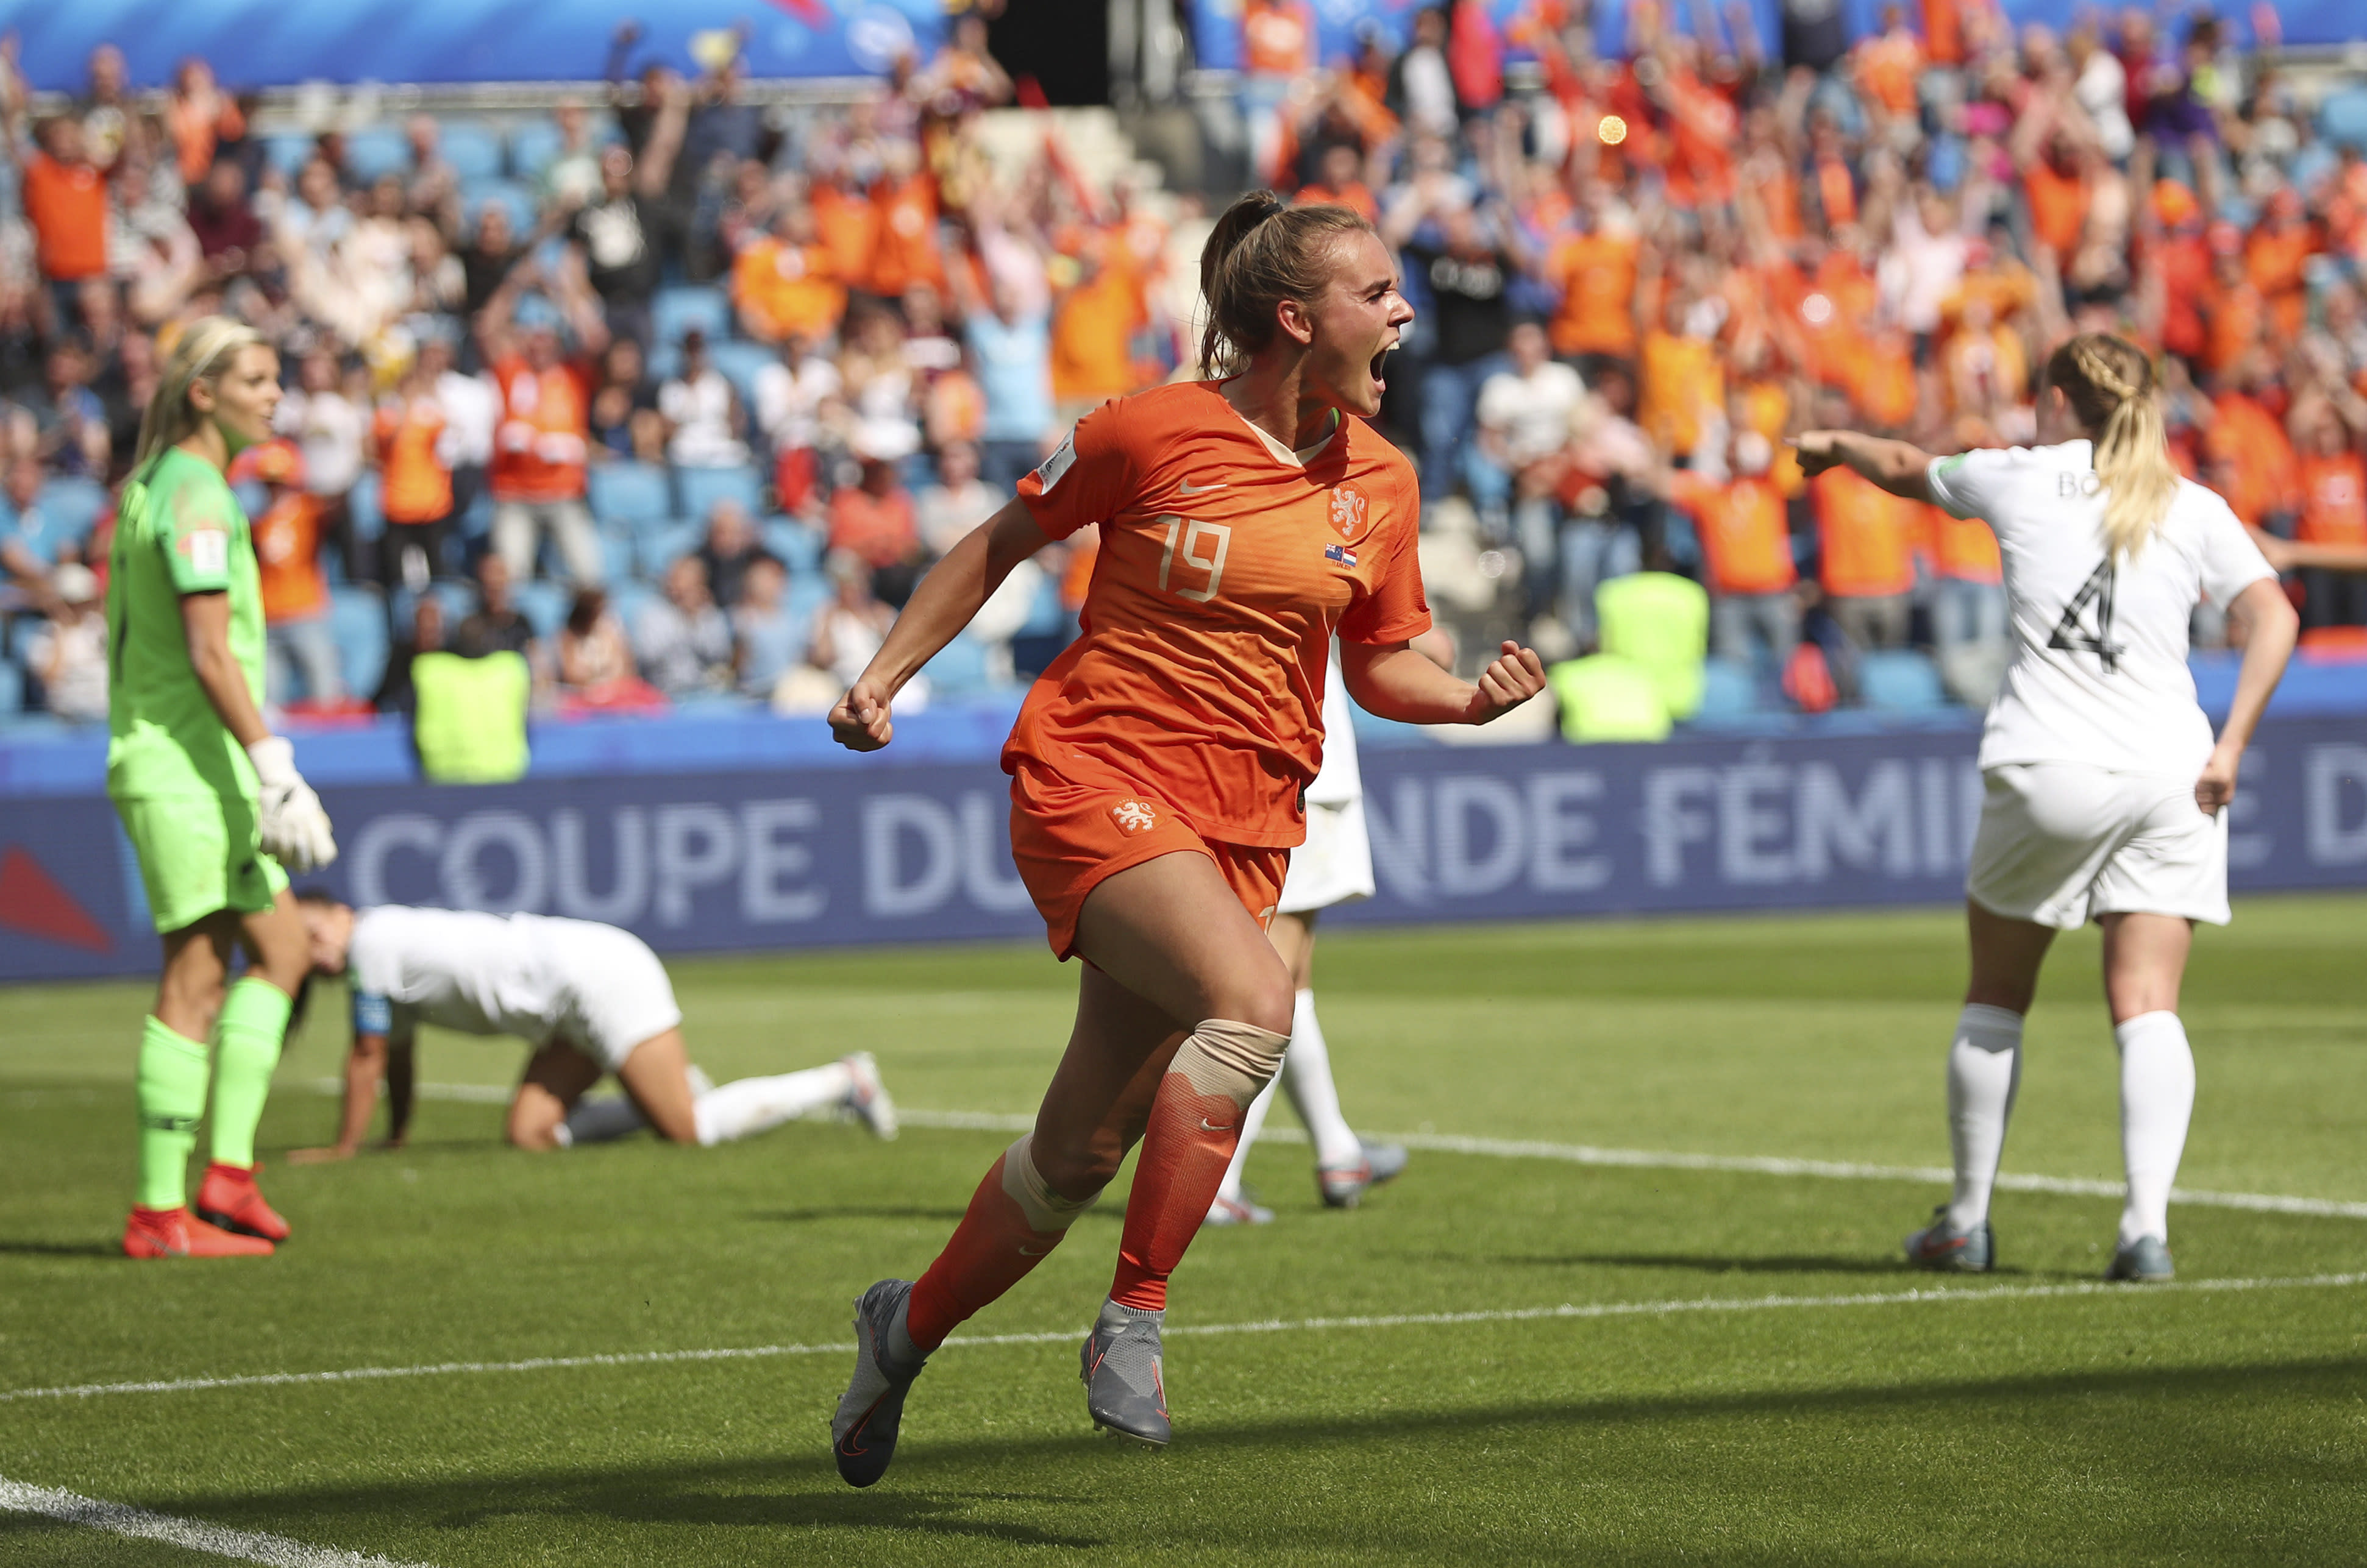 Netherlands bests New Zealand 1-0 on stoppage time goal